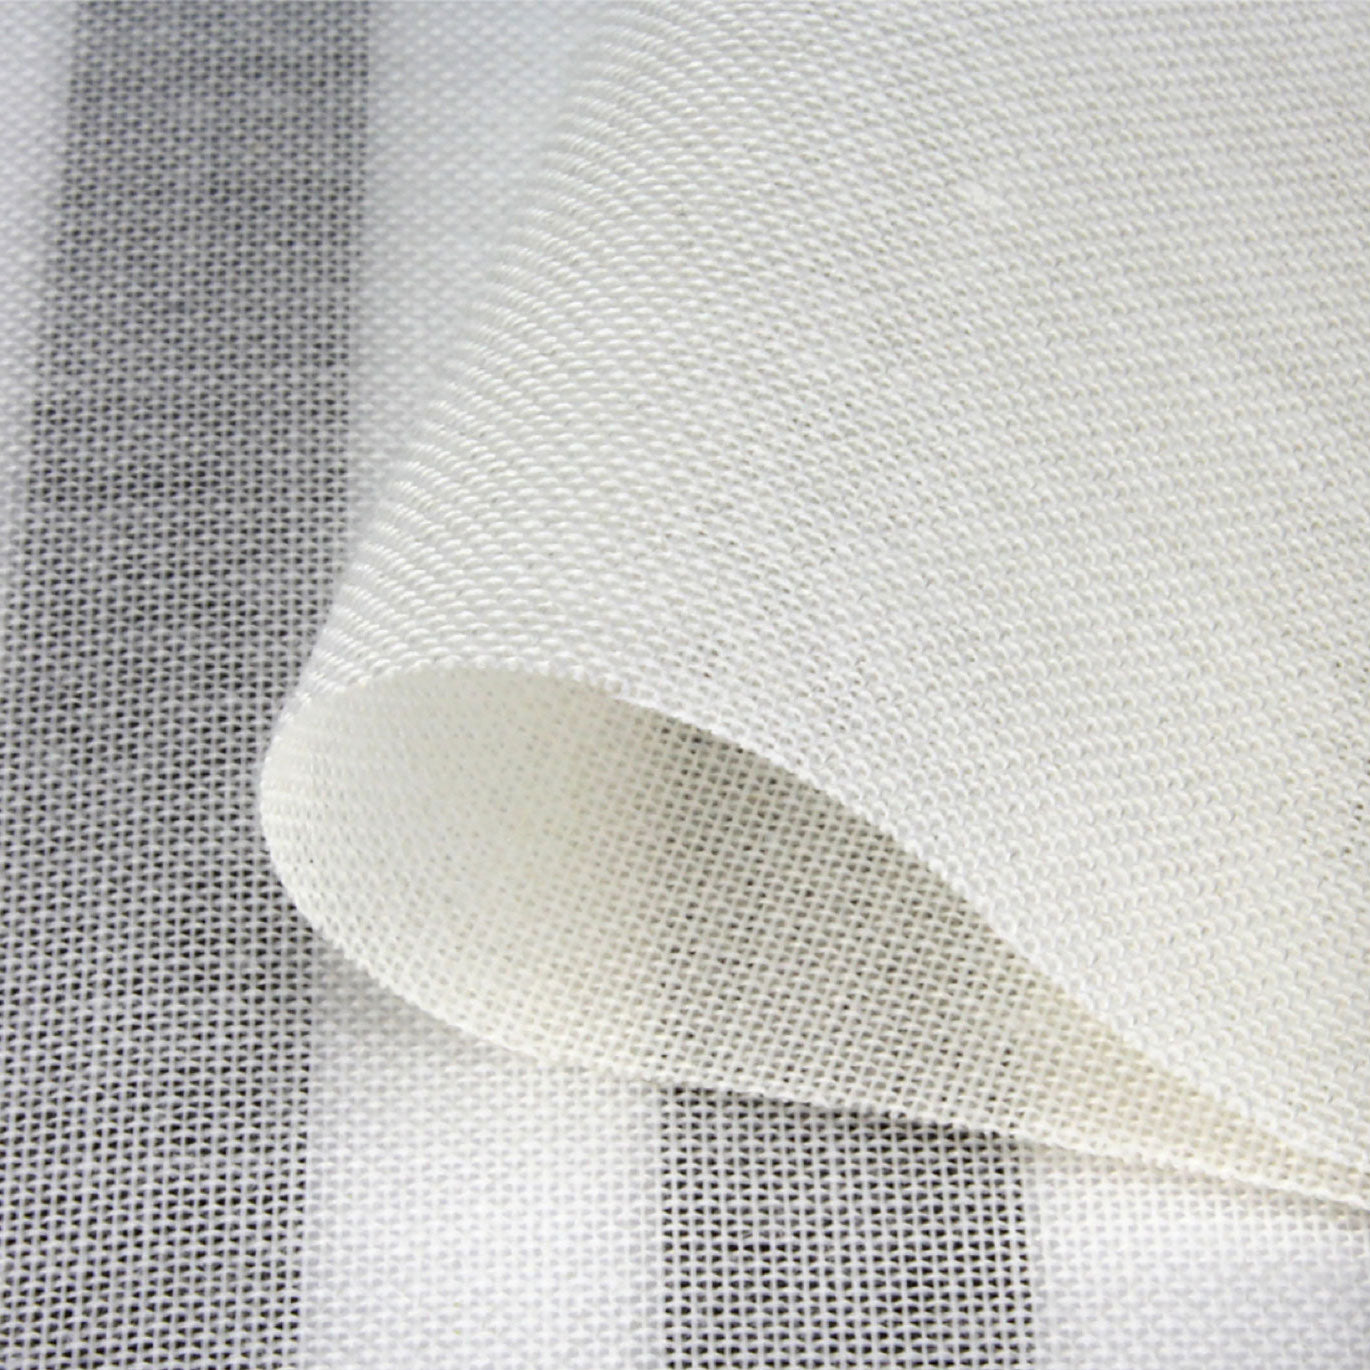 ULTIMA Shielding Fabric for High Frequency EMF (per metre)